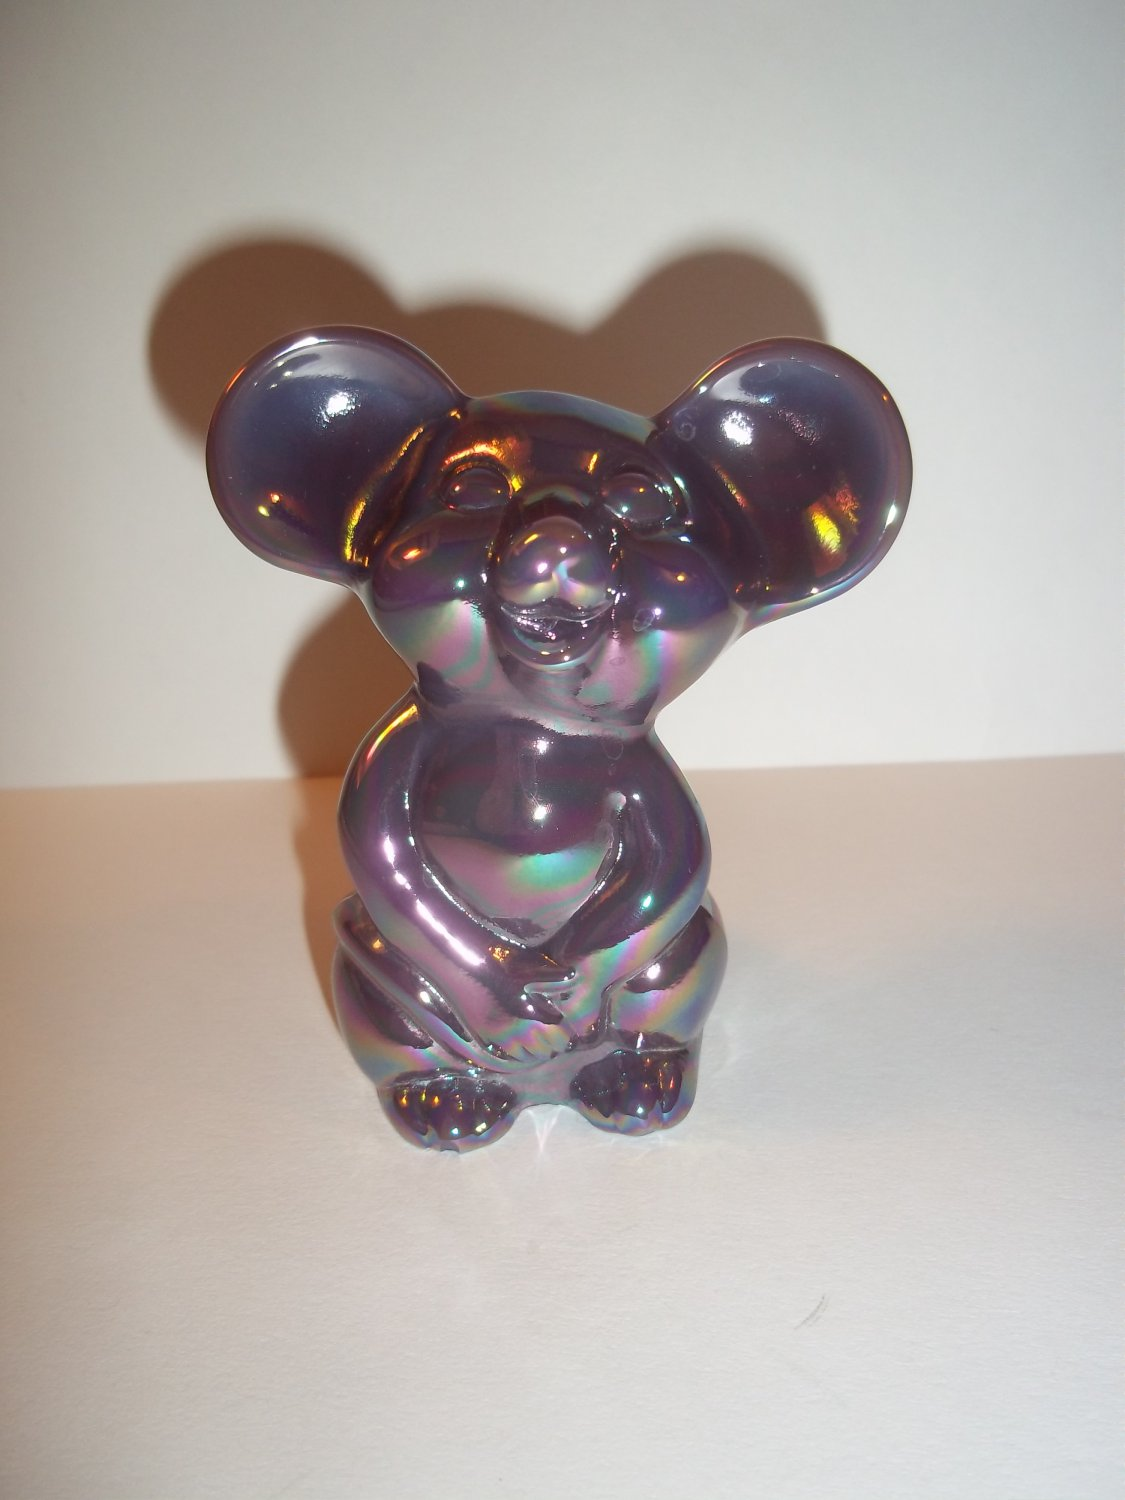 Fenton Glass Eggplant Purple Carnival Iridized Mouse Figurine NFGS Exclusive